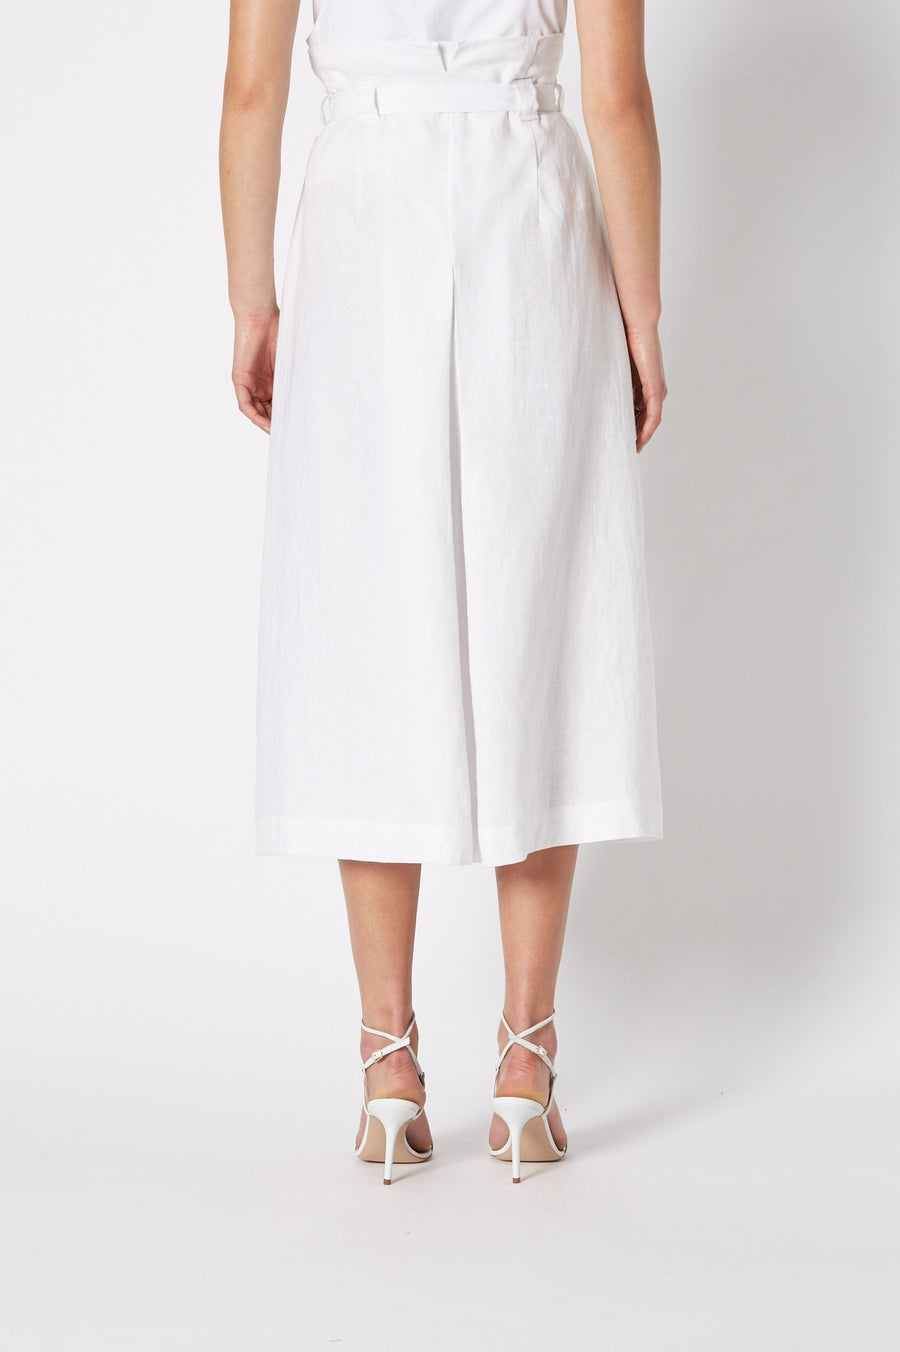 LINEN DEEP WOVEN PLEAT SKIRT, HIGH WAIST AND FALLS BELOW KNEE, COLOR WHITE